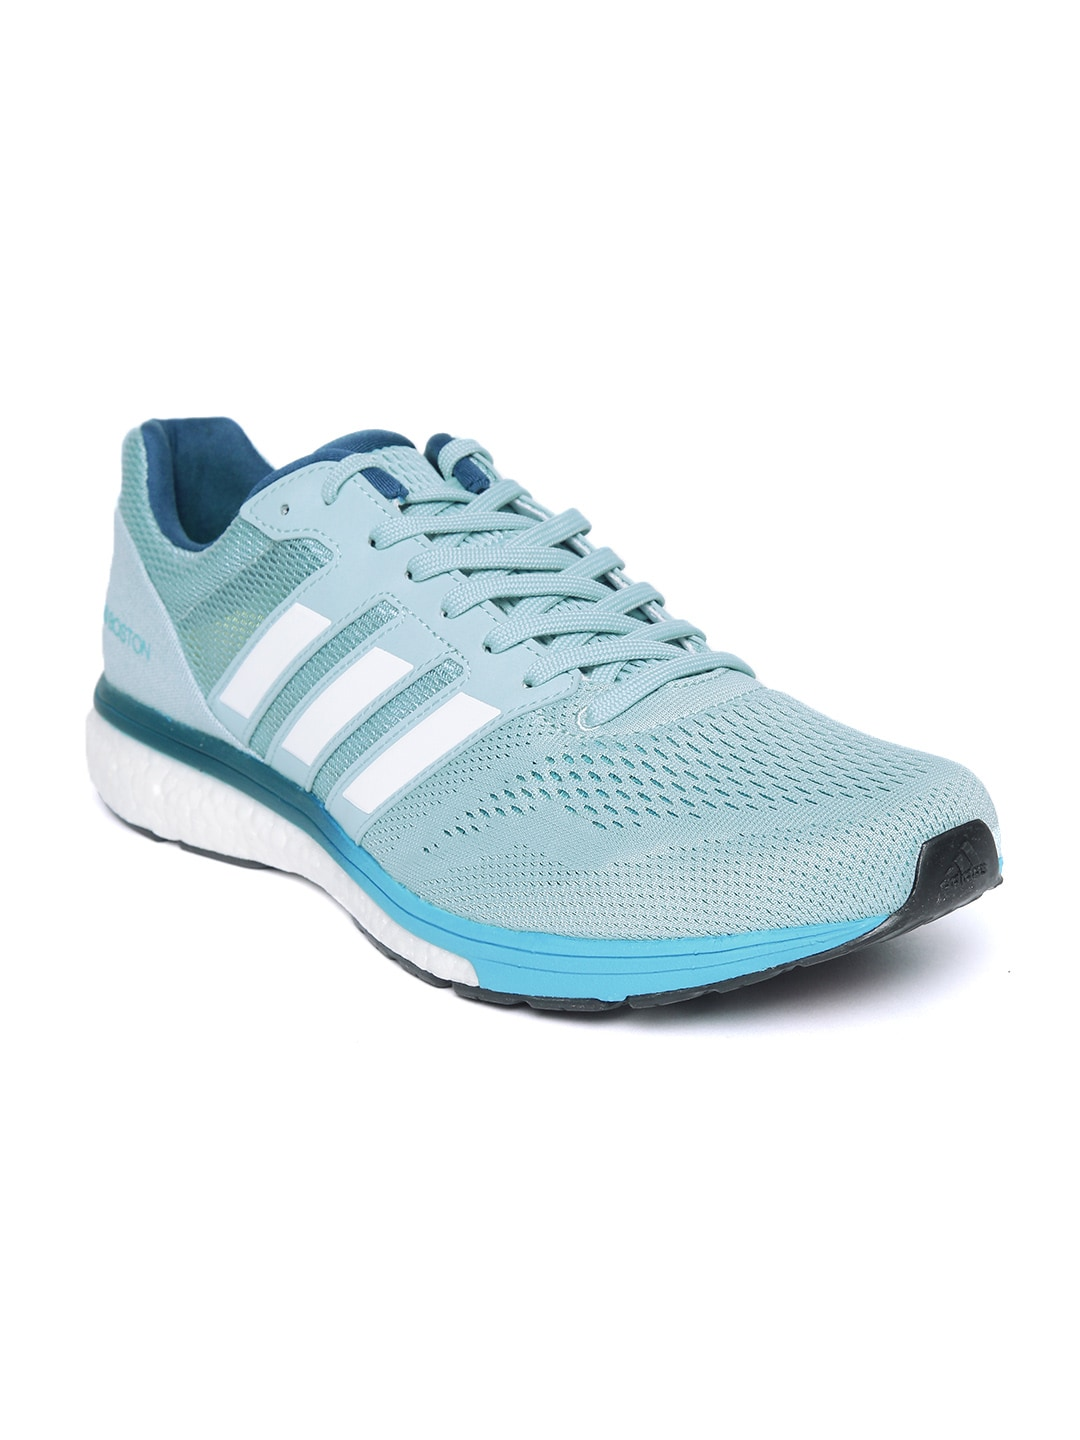 ADIDAS Men Grey ADIZERO BOSTON 7 M Running Shoes